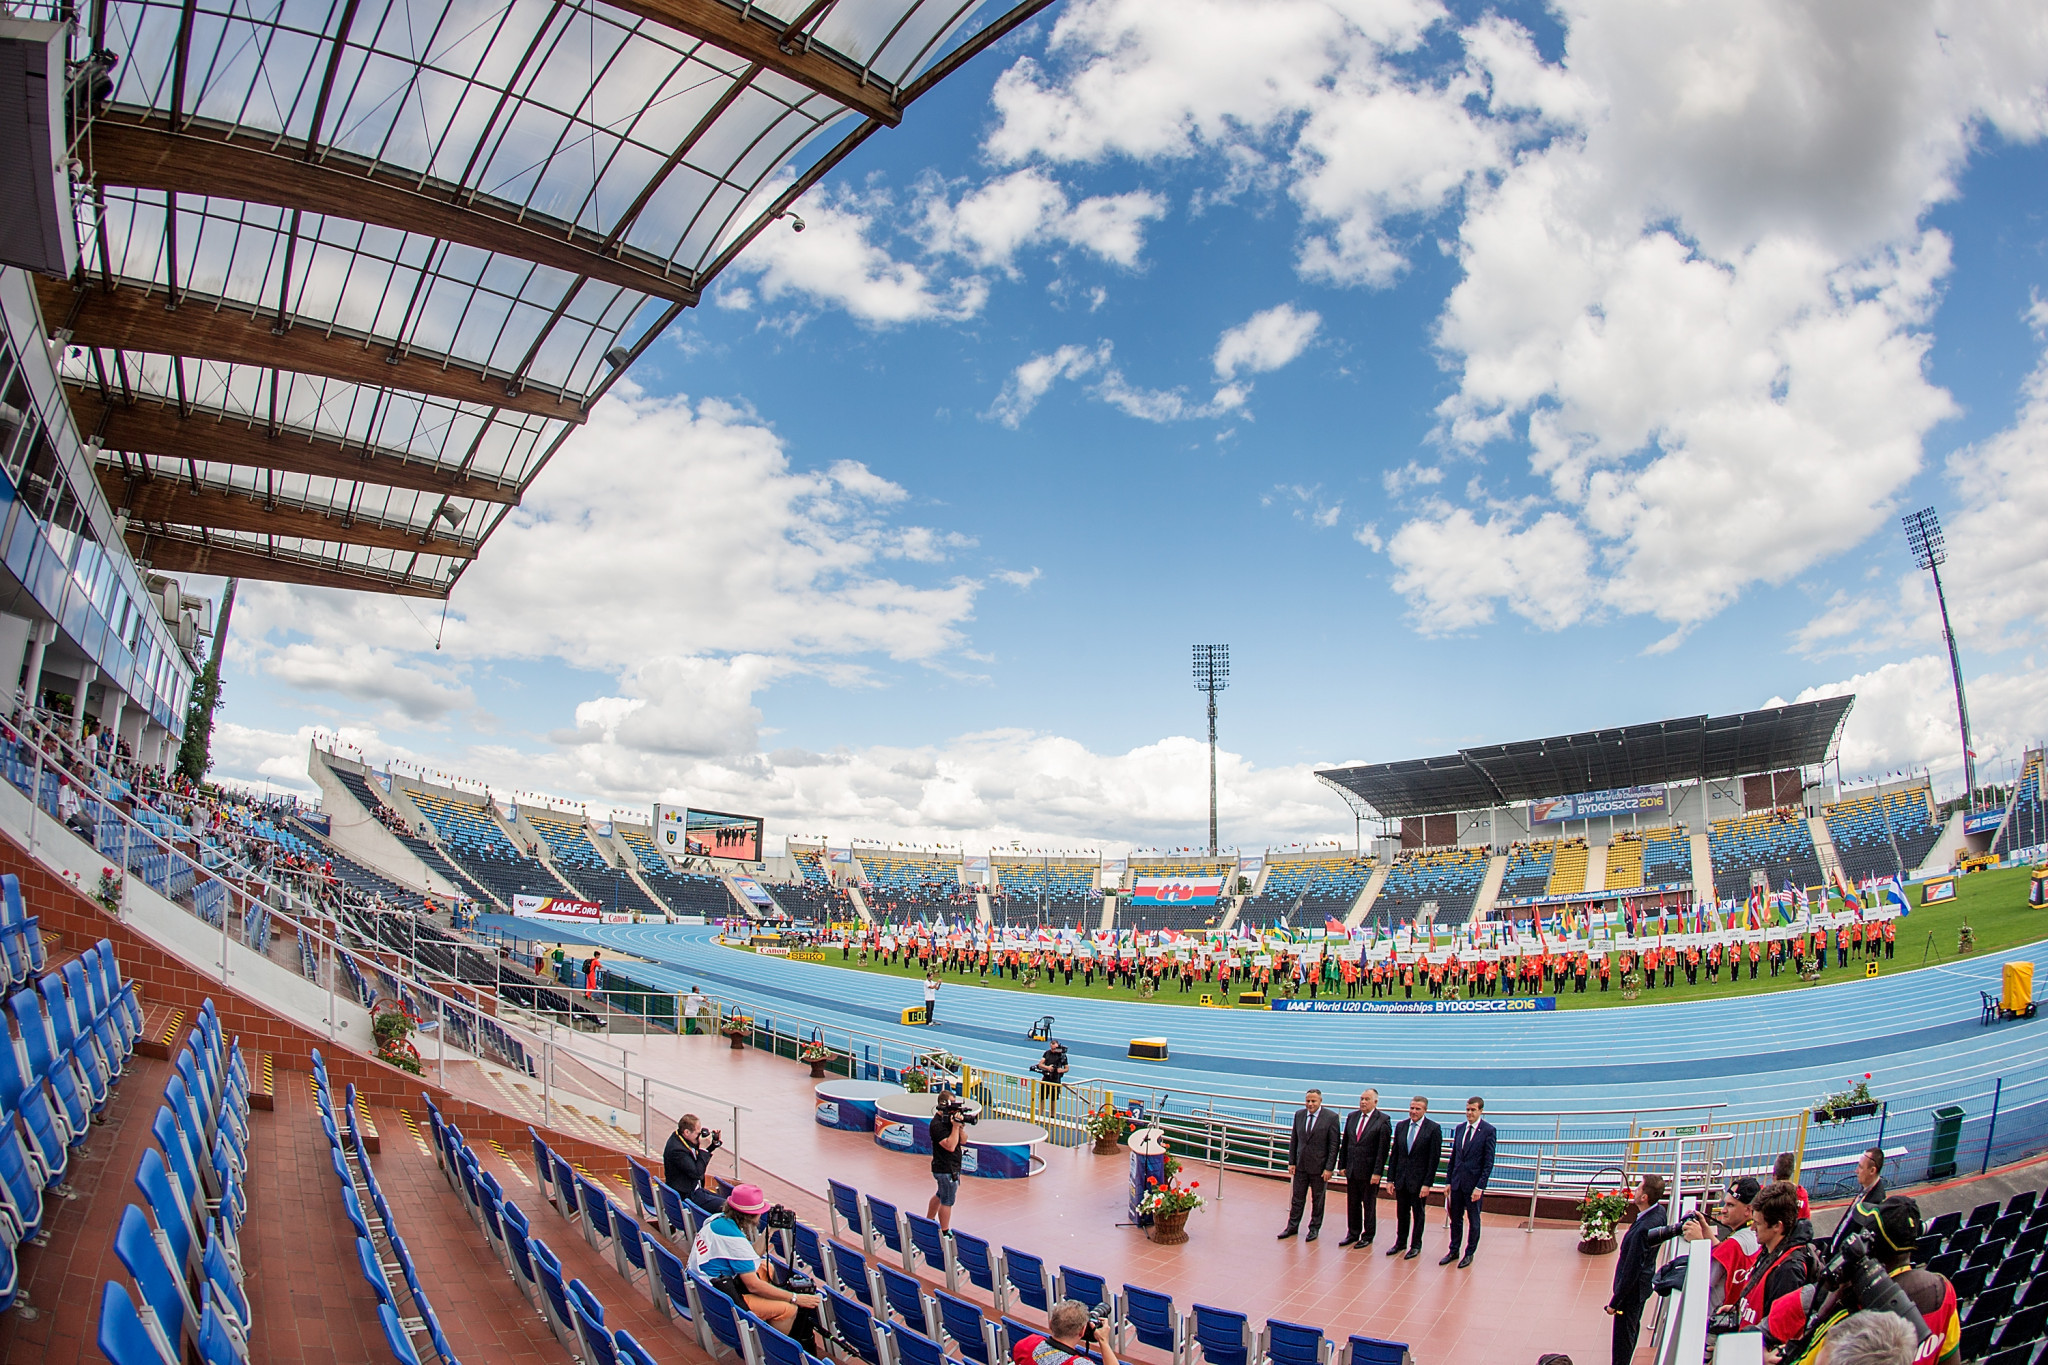 The Zdzisław Krzyszkowiak Stadium will be the venue for the World Para Athletics Grand Prix in Bydgoszcz ©Getty Images